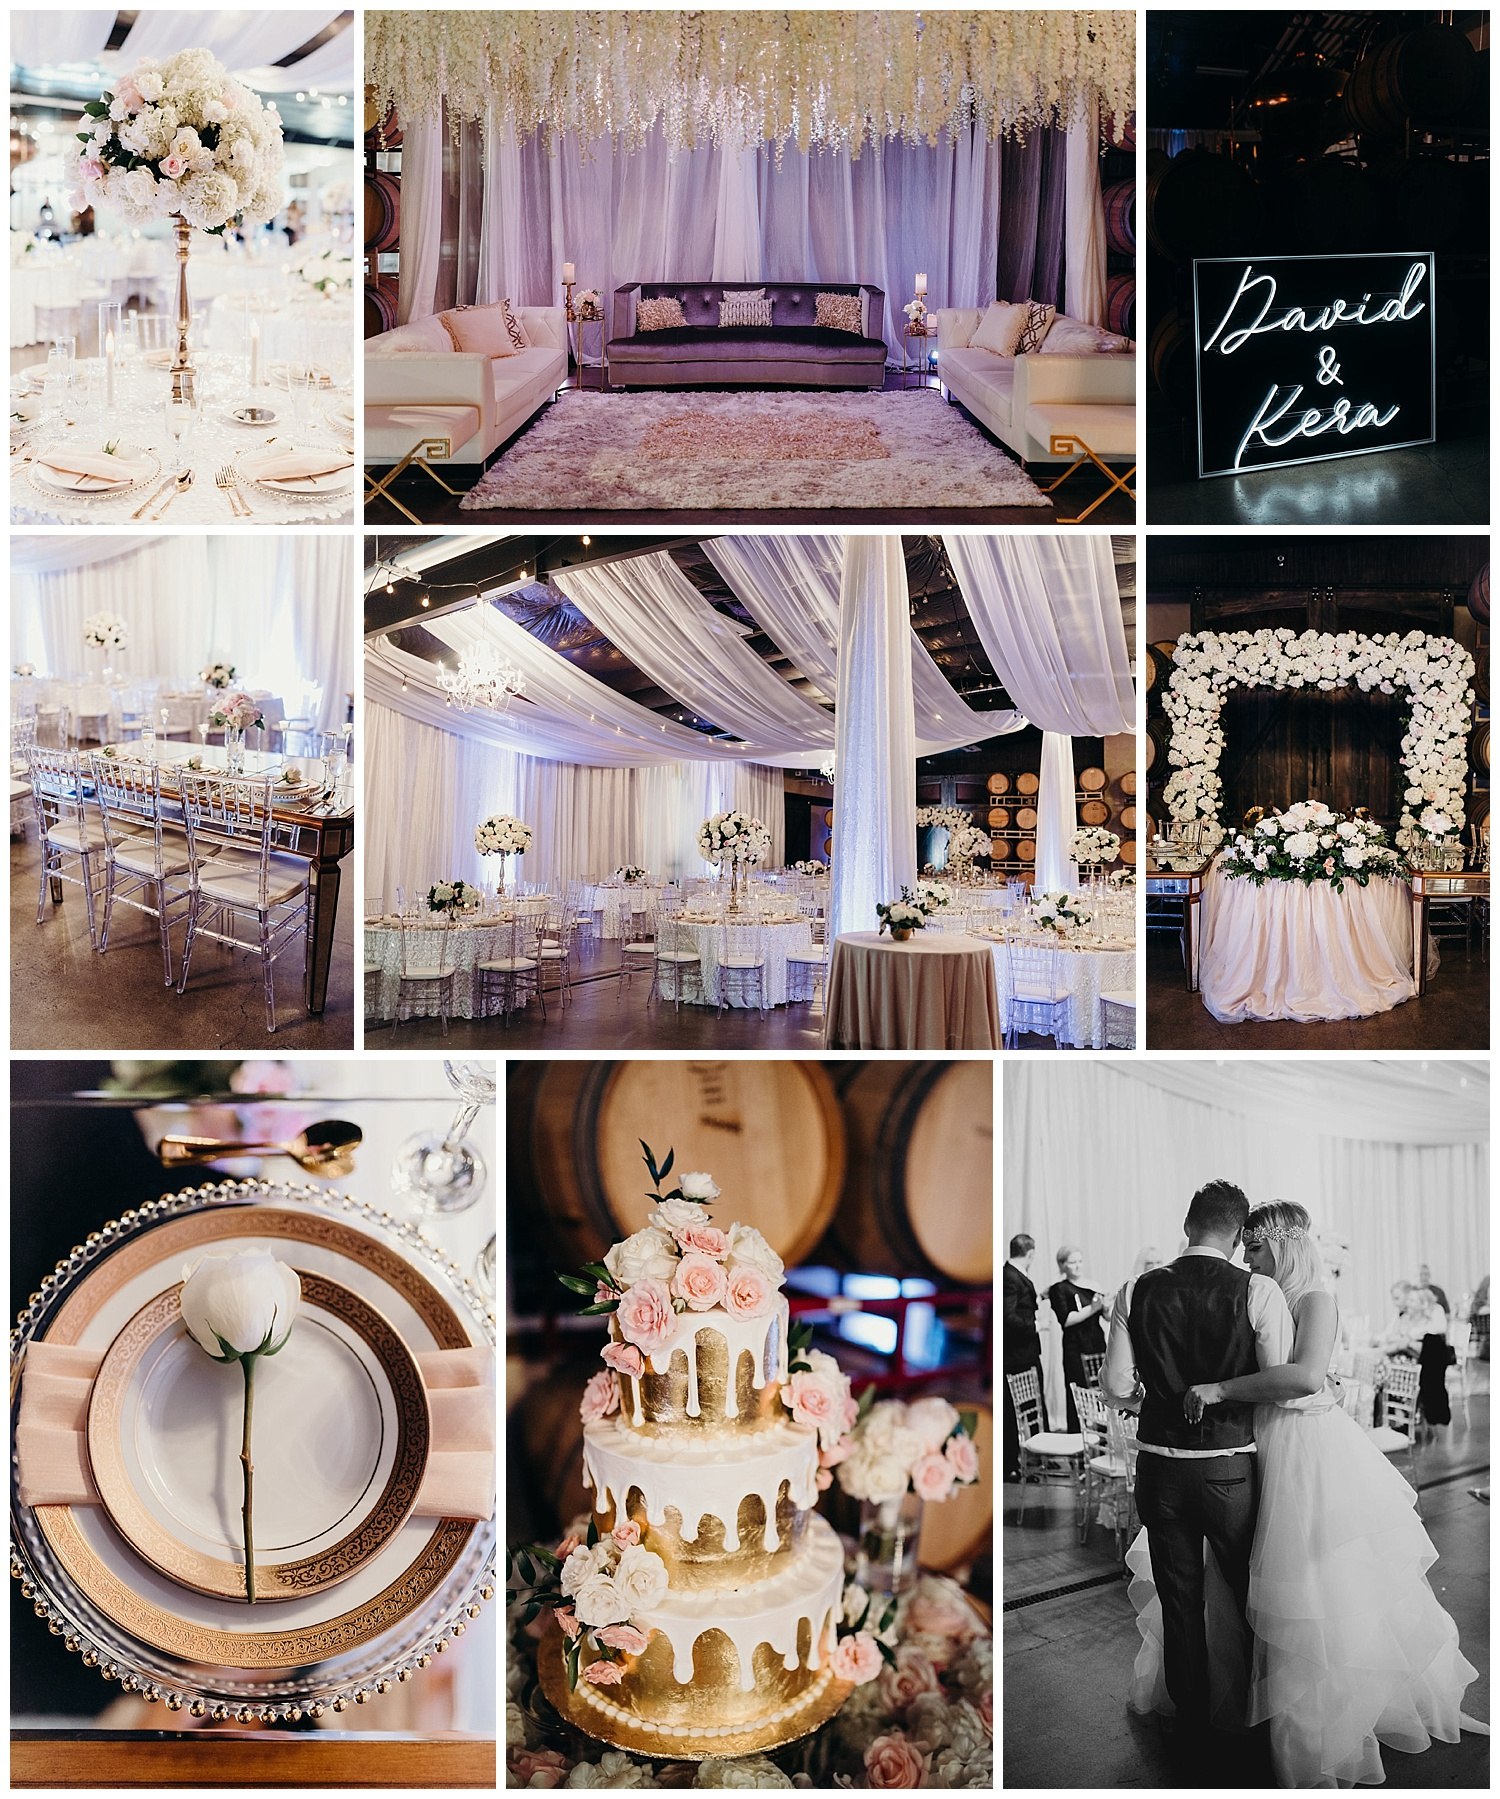 barrel-room-wedding_the-530-bride_shannon-rosan-photo